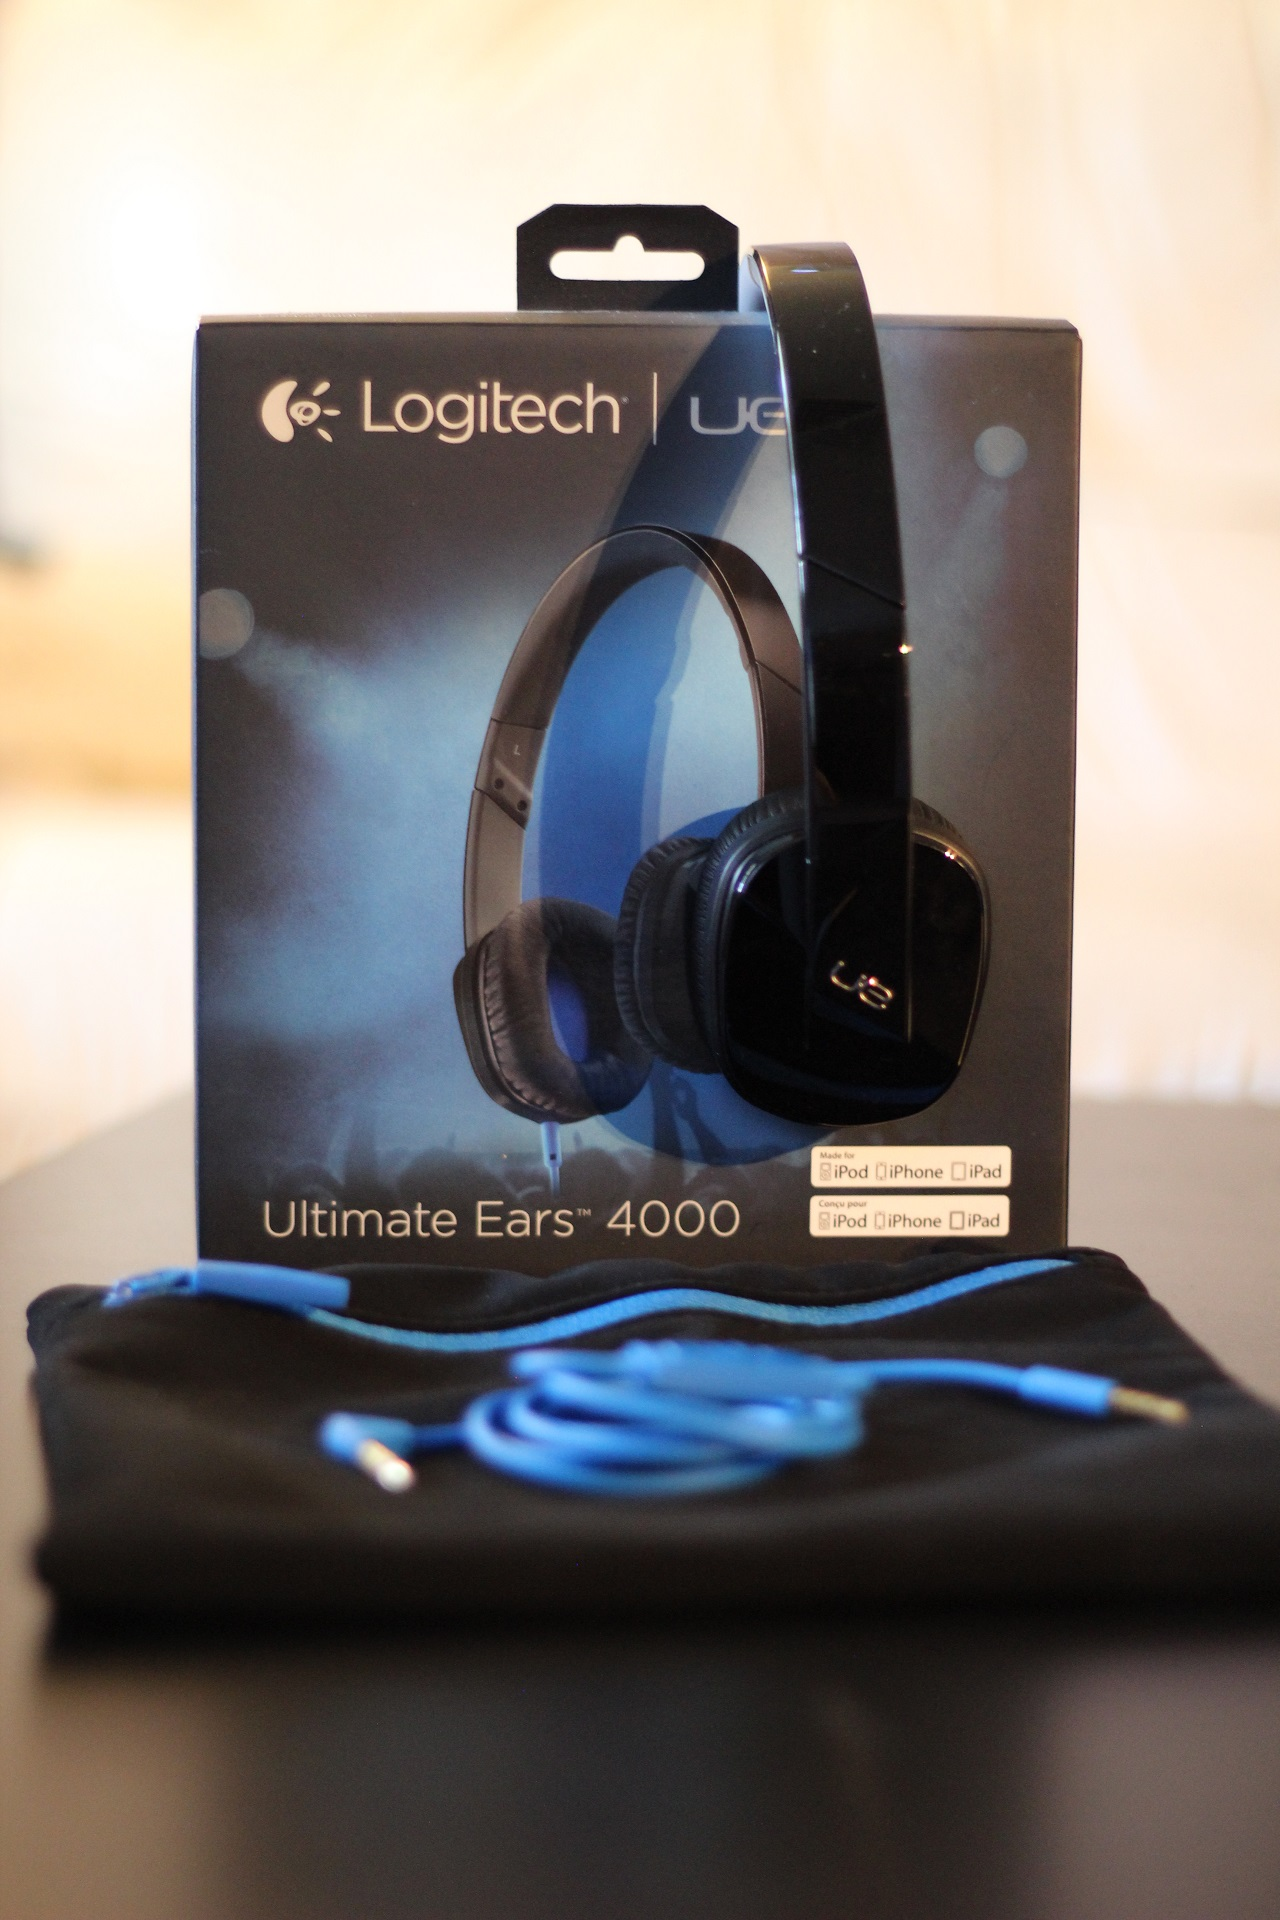 Budget Friendly Headphones Review 001 - Logitech UE 6000, 4000